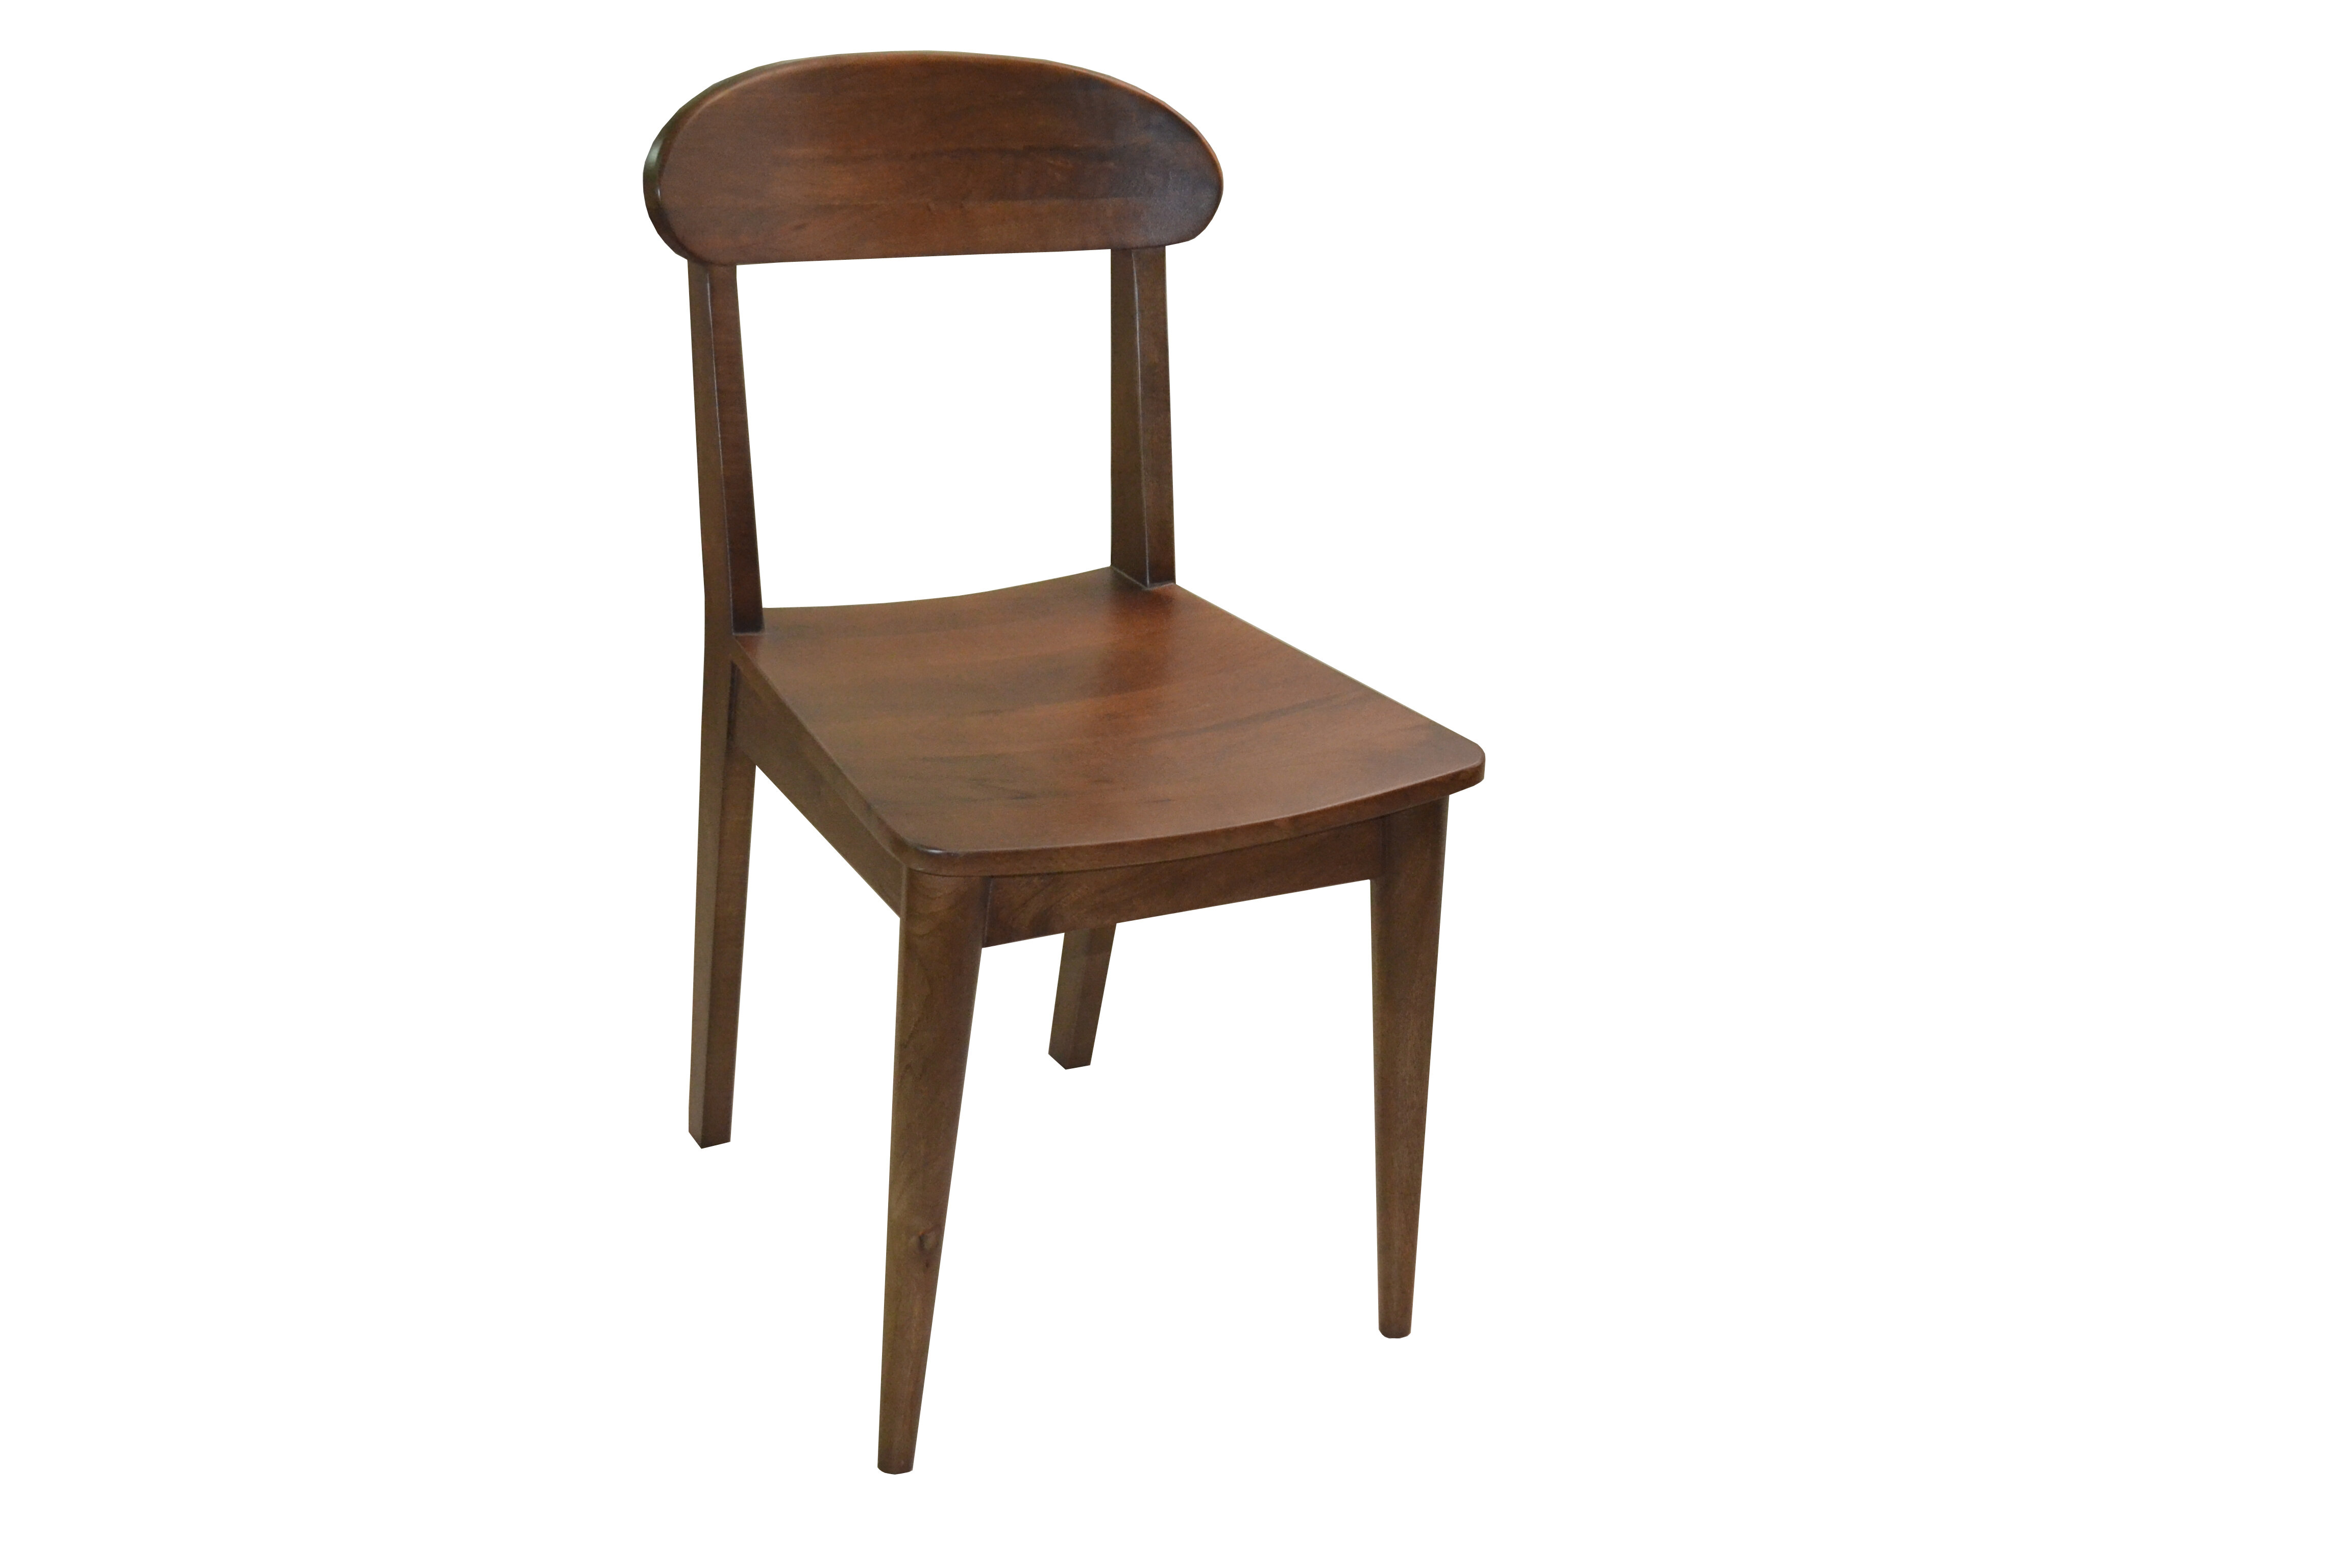 Corrigan studio jeff retro dining chair wayfair